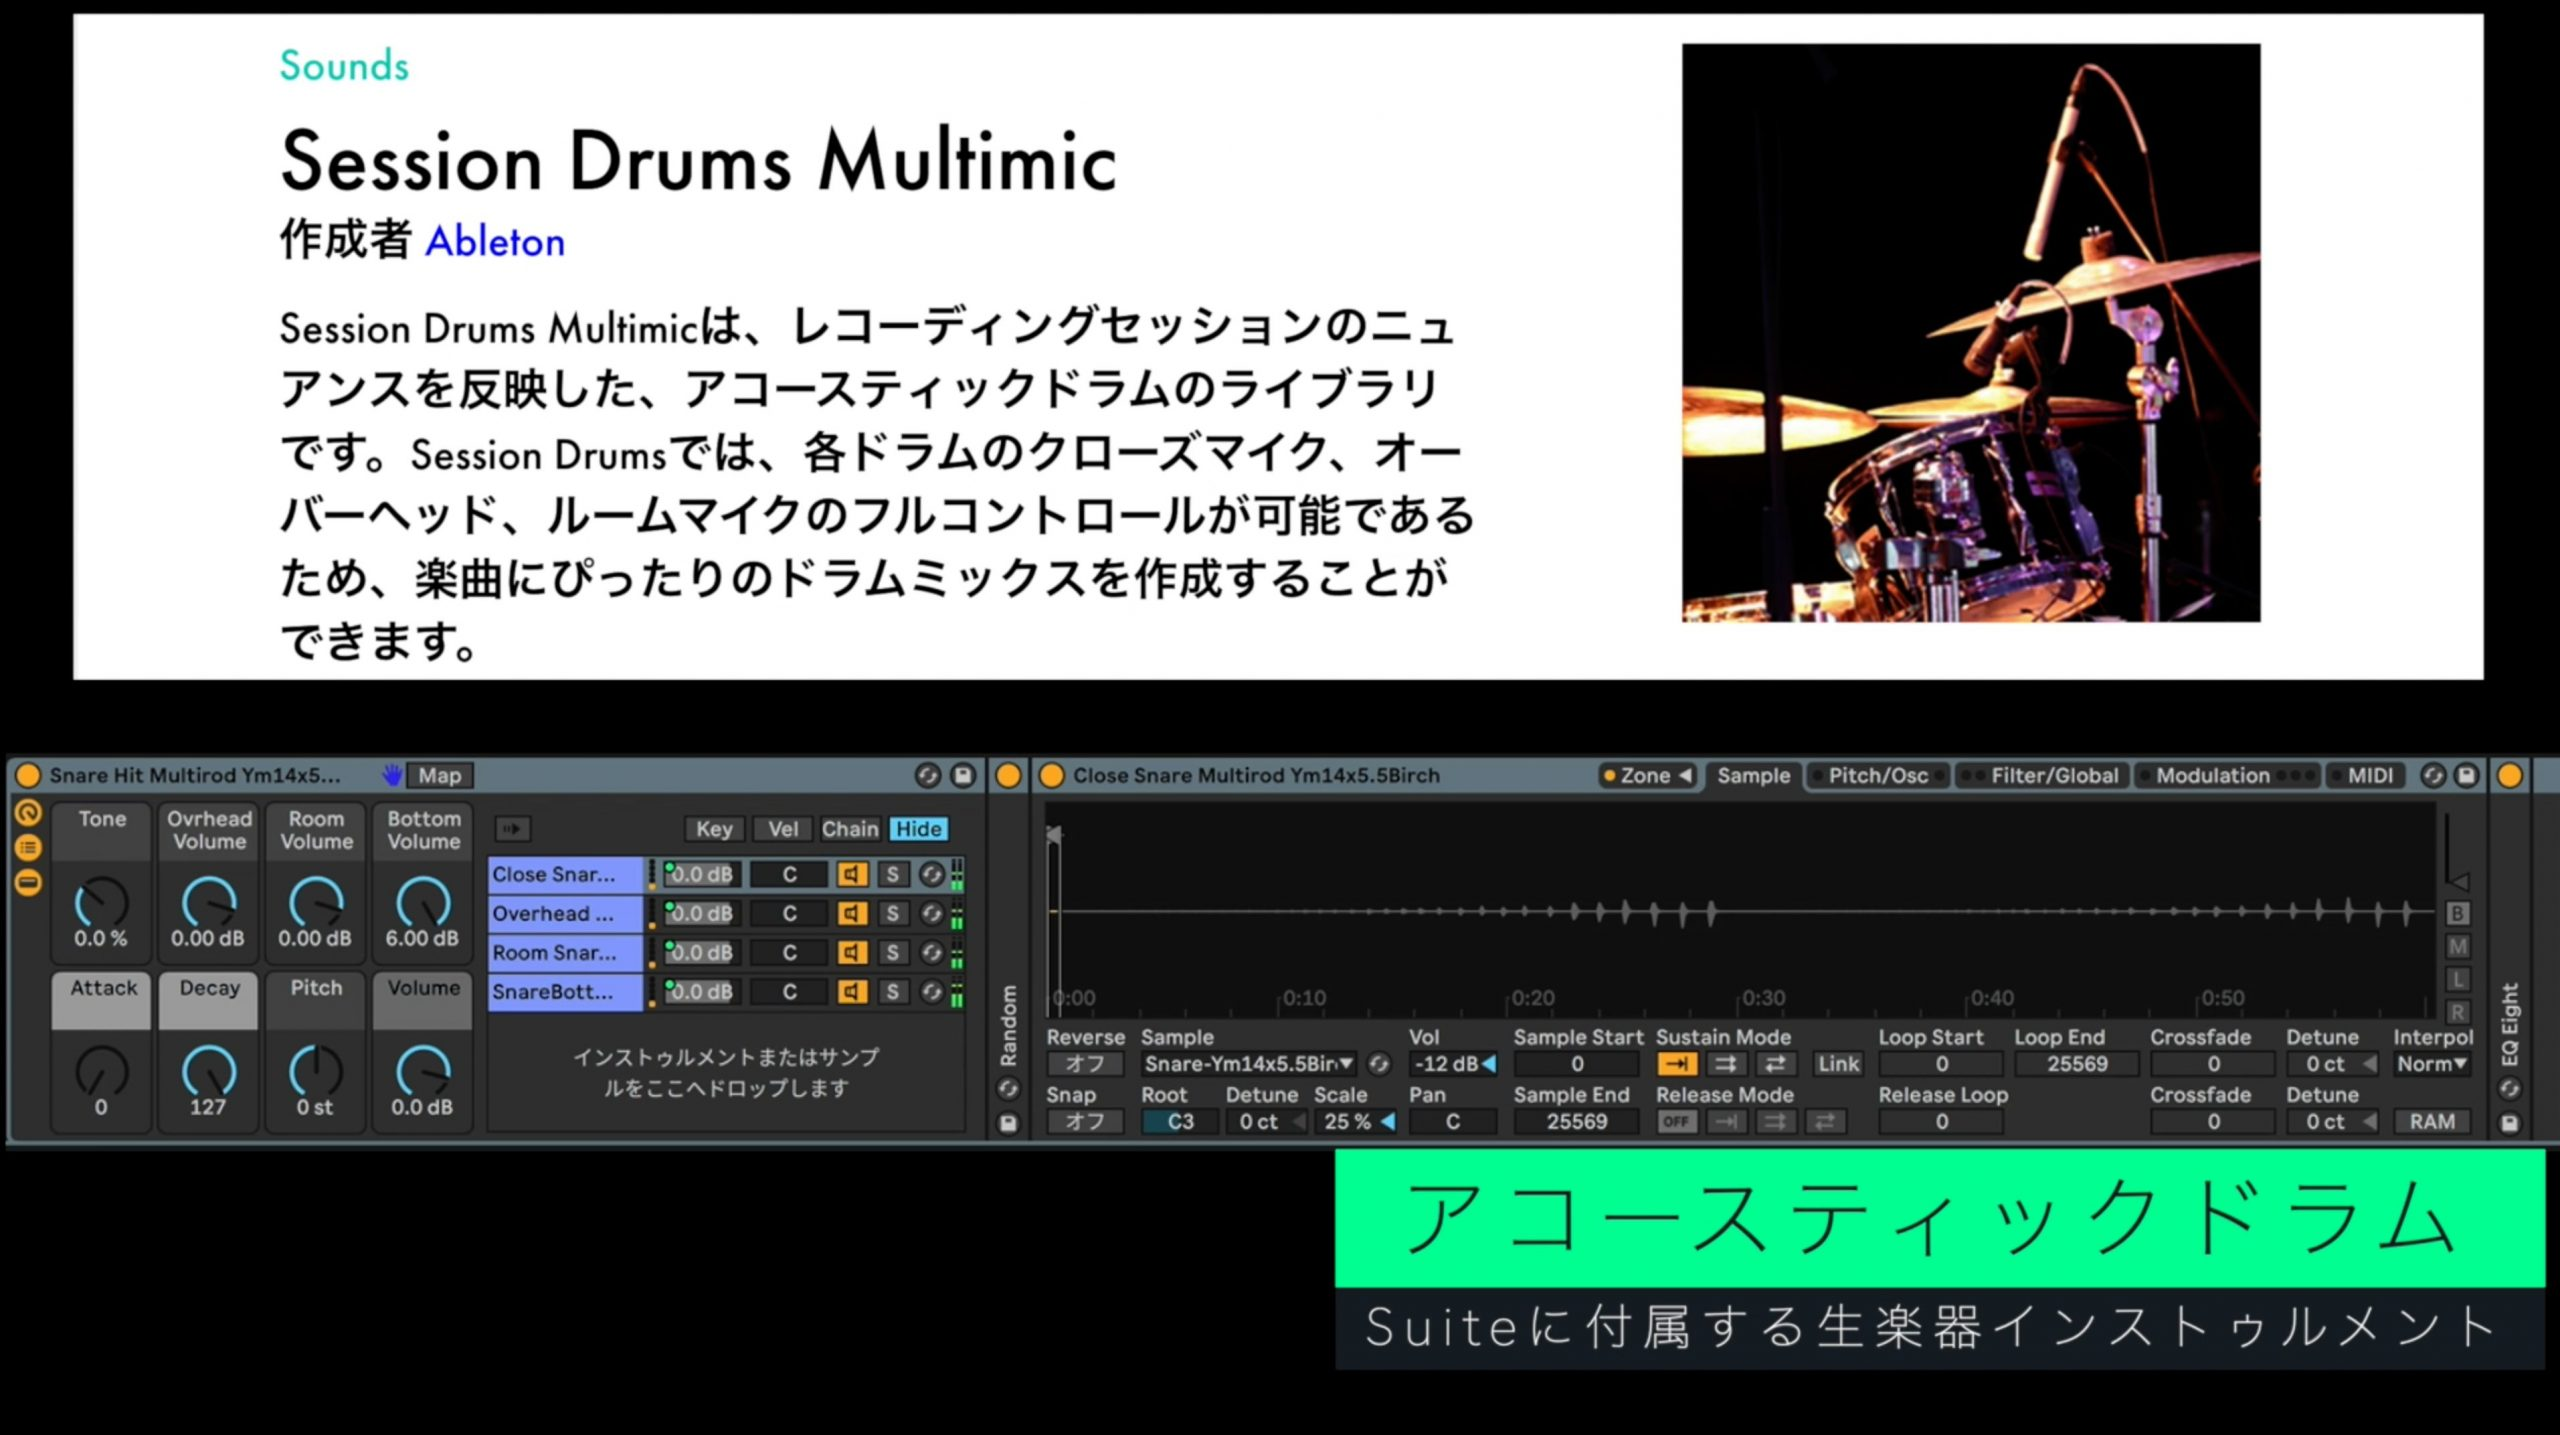 Ableton Multimic Drum